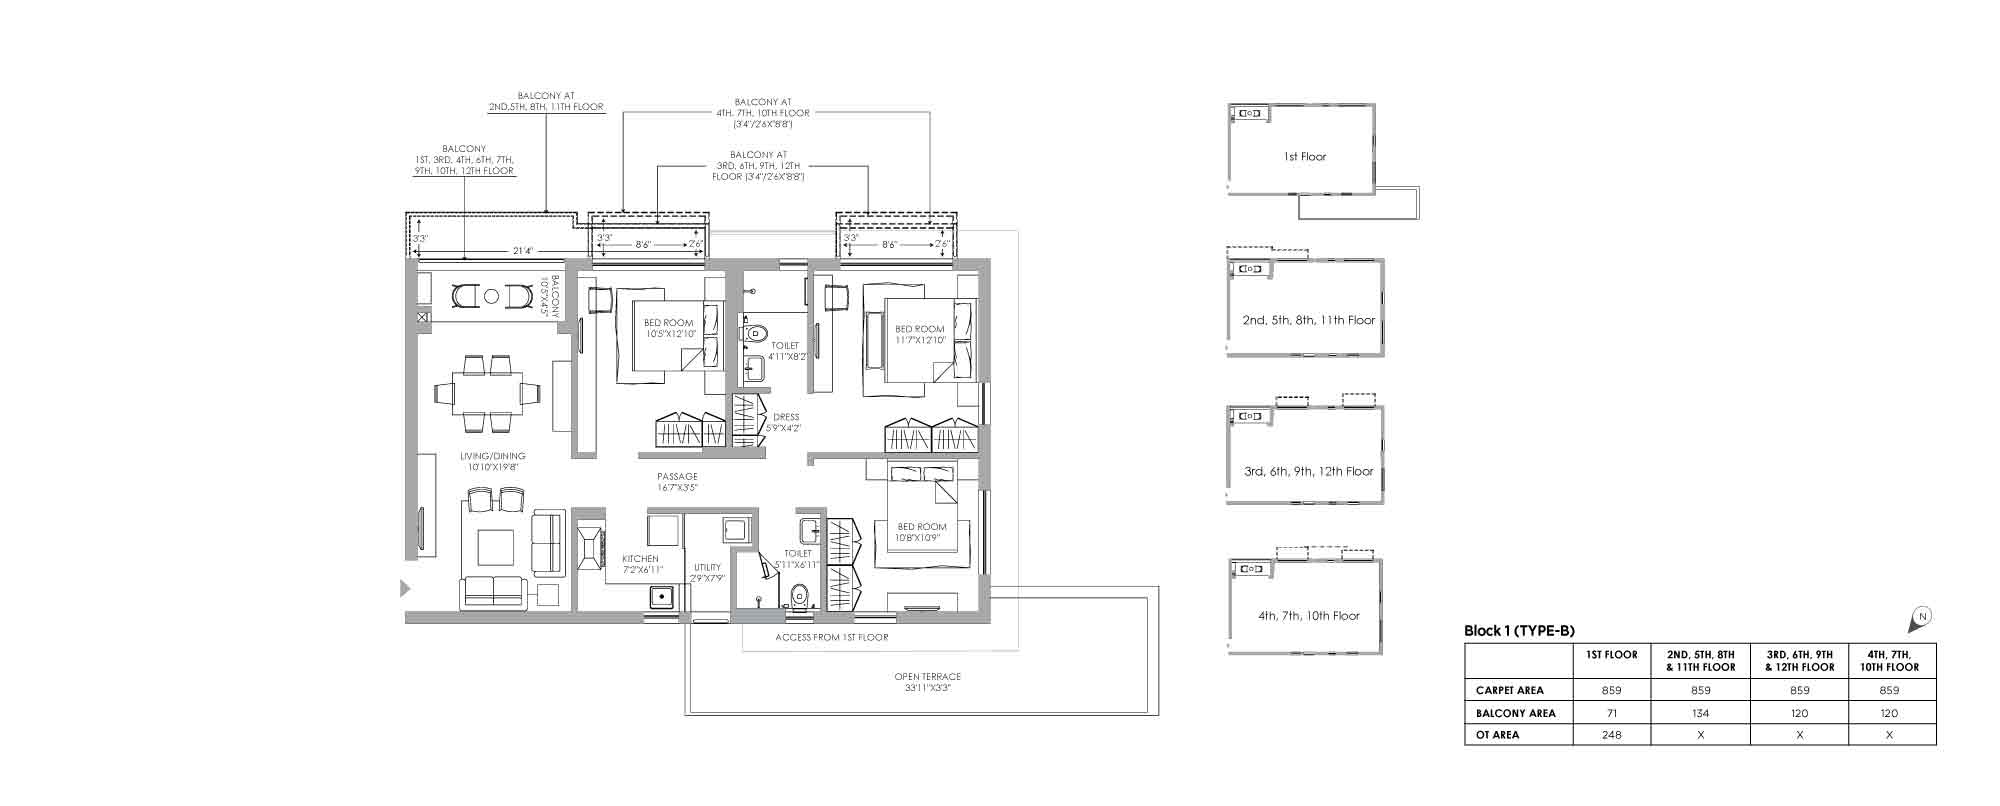 Jiva Unit Plan 3 BHK Block 1 Type B